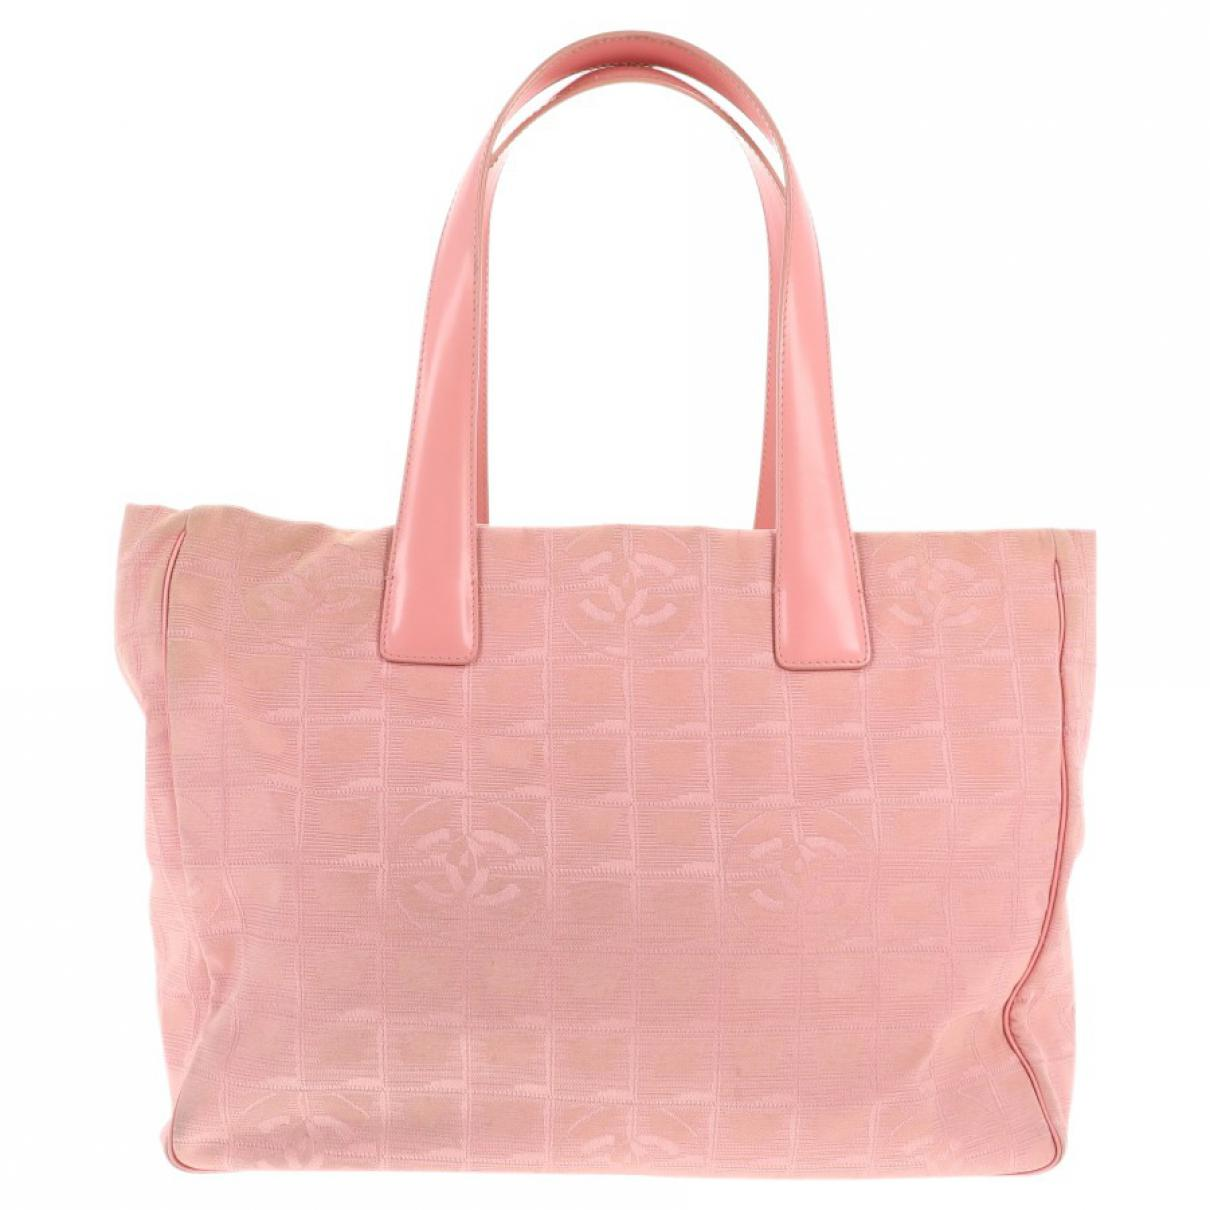 3ce9401bd603 Chanel Pre-owned Cloth Handbag in Pink - Lyst